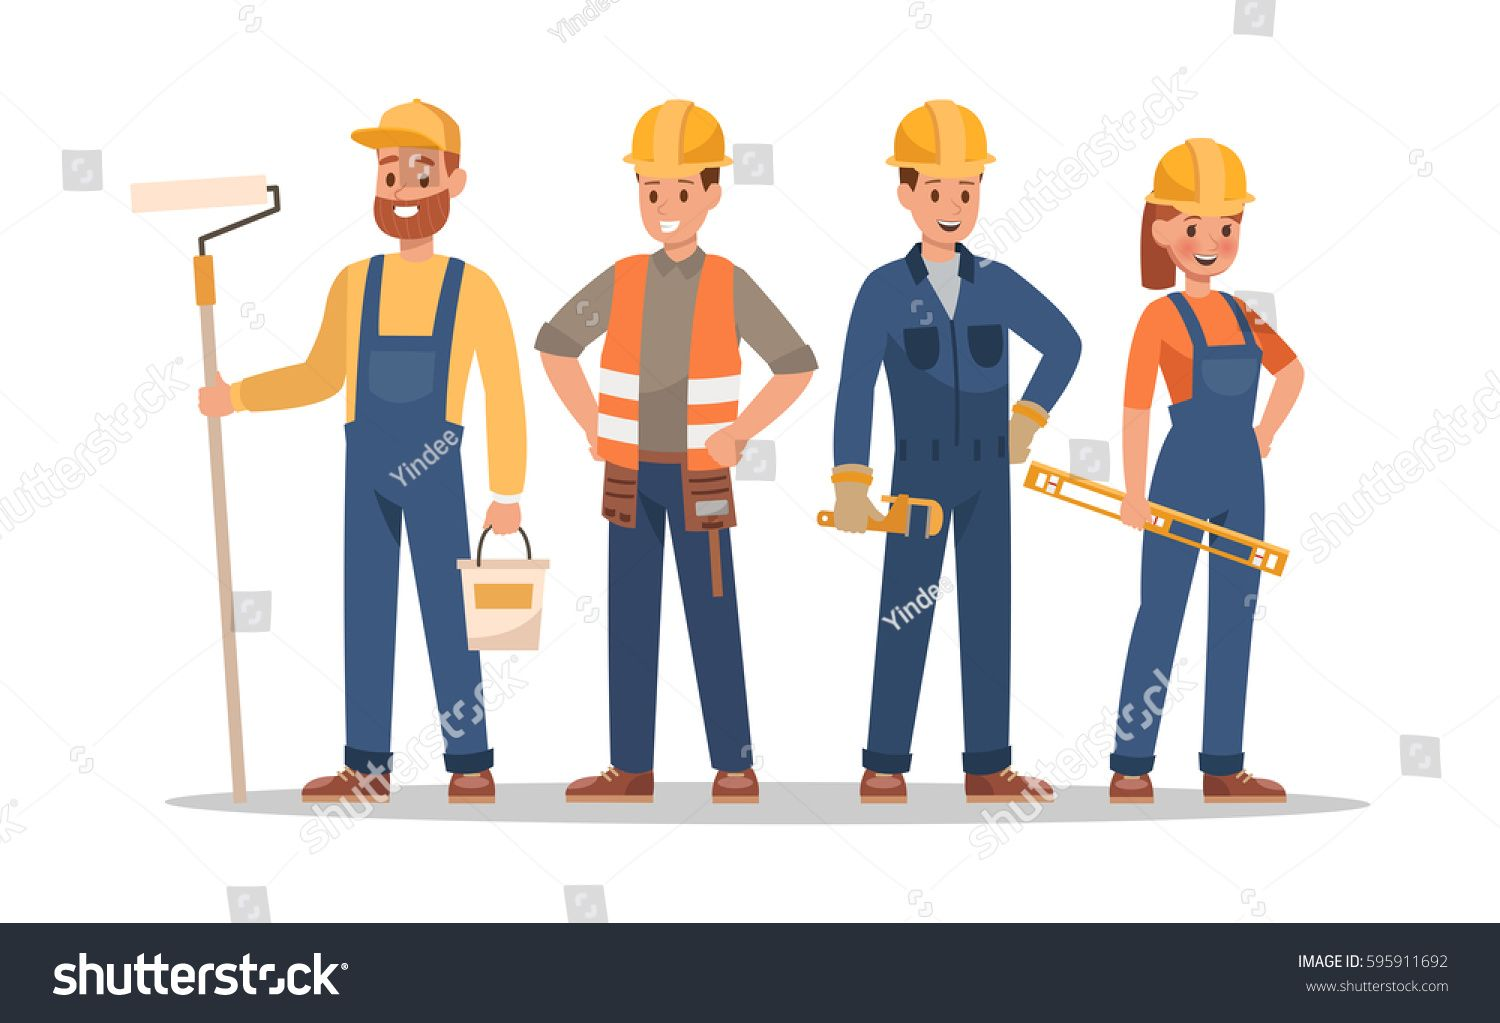 Construction staff characters design. Include foreman